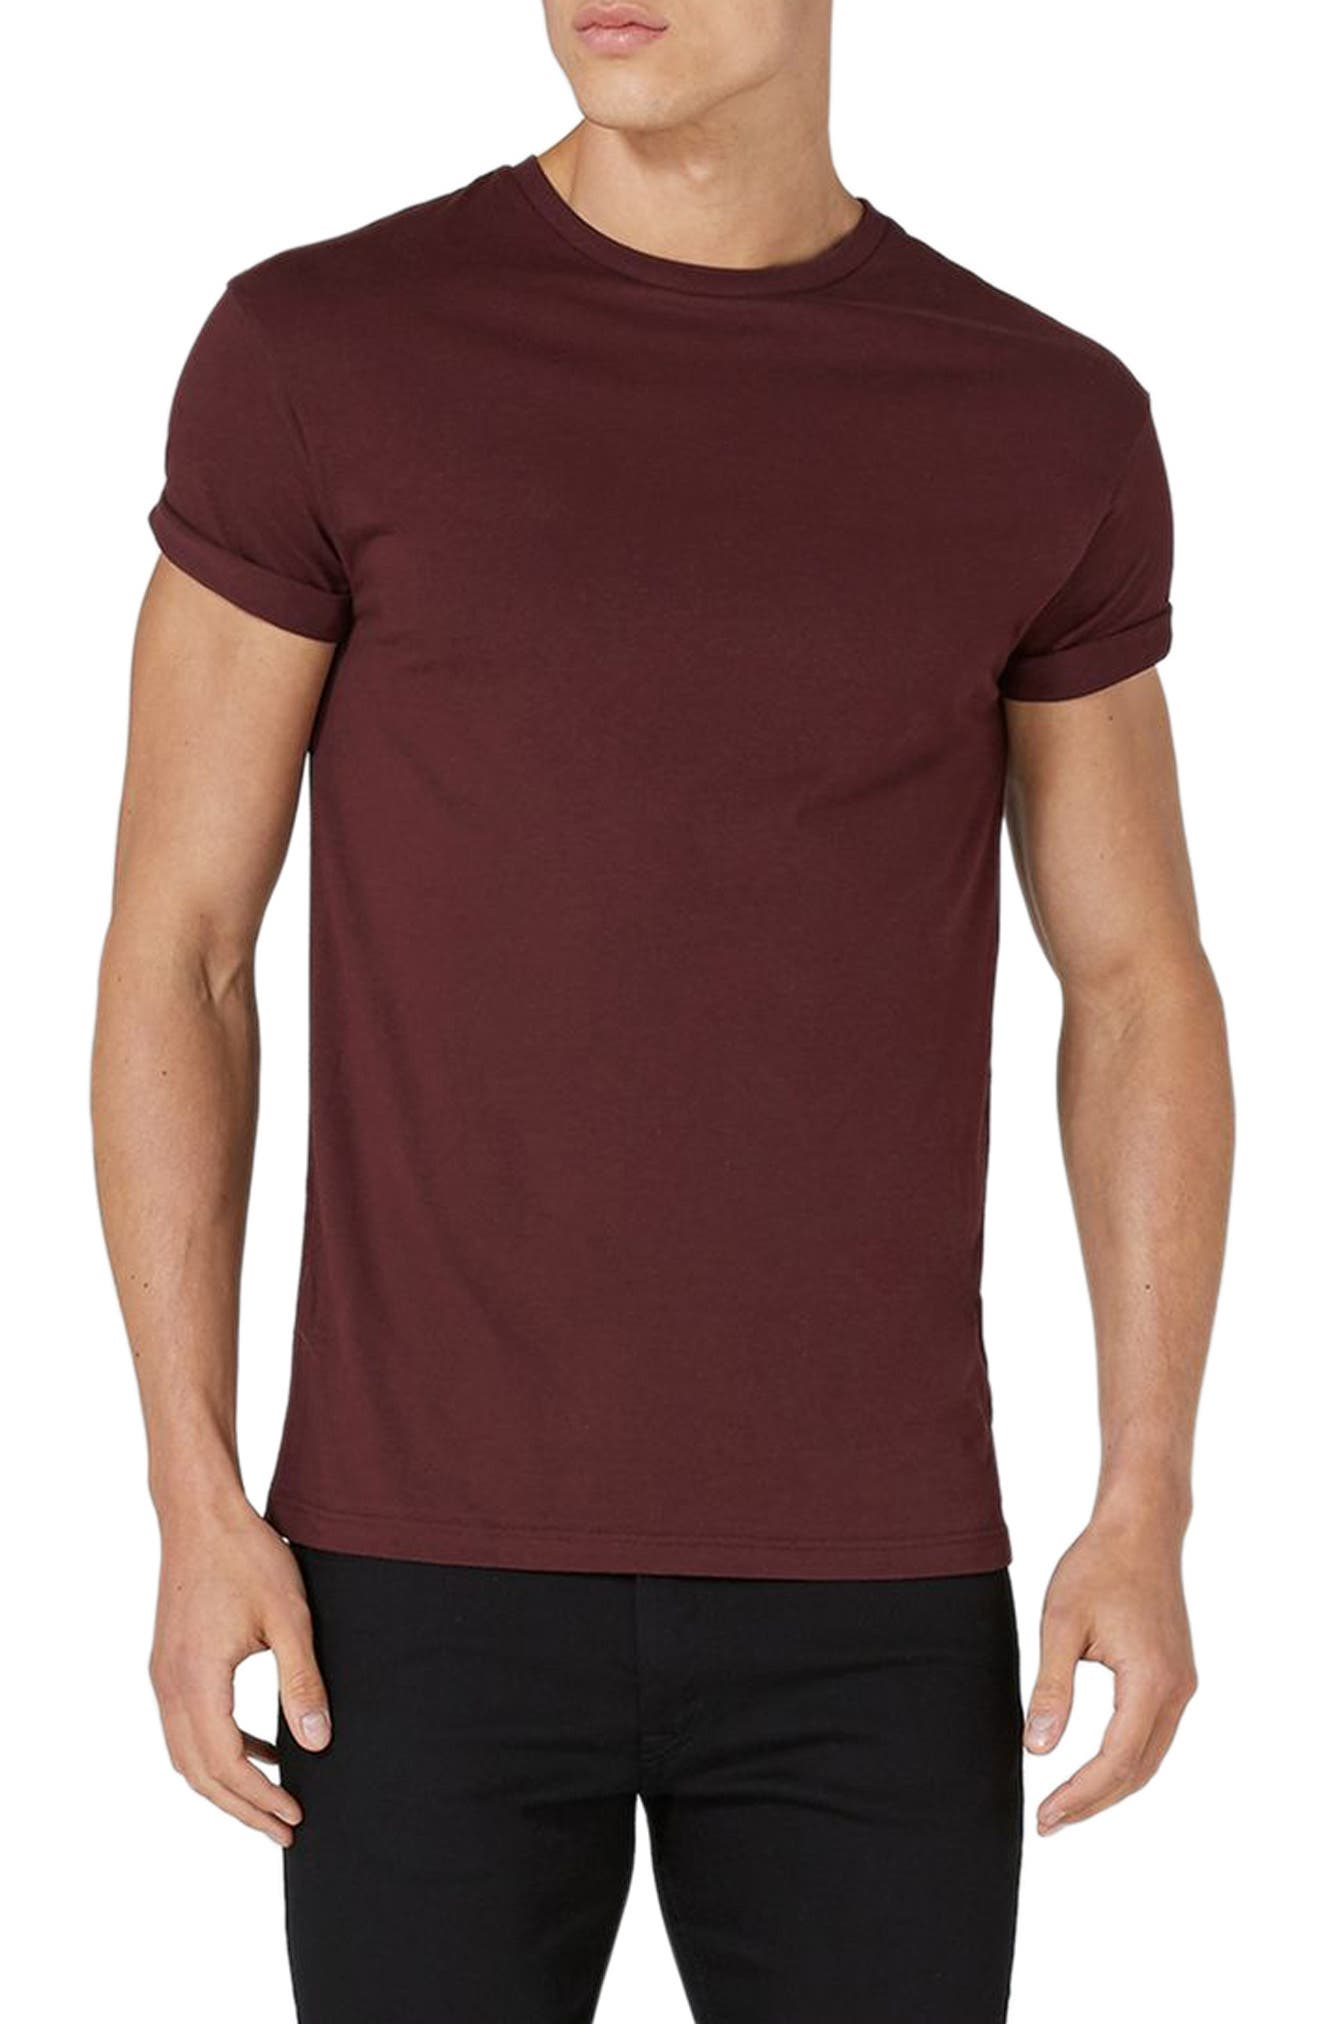 Muscle Fit Roller T-Shirt,                             Main thumbnail 1, color,                             Burgundy